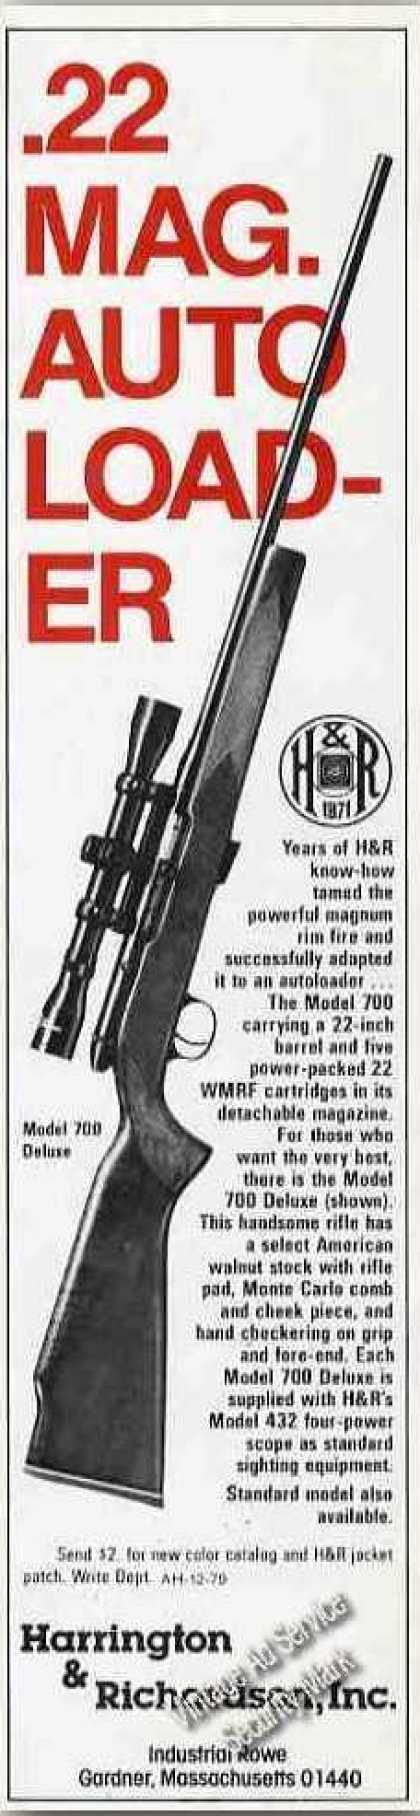 Harrington & Richardson Model 700 .22 Mag. Gun (1979)